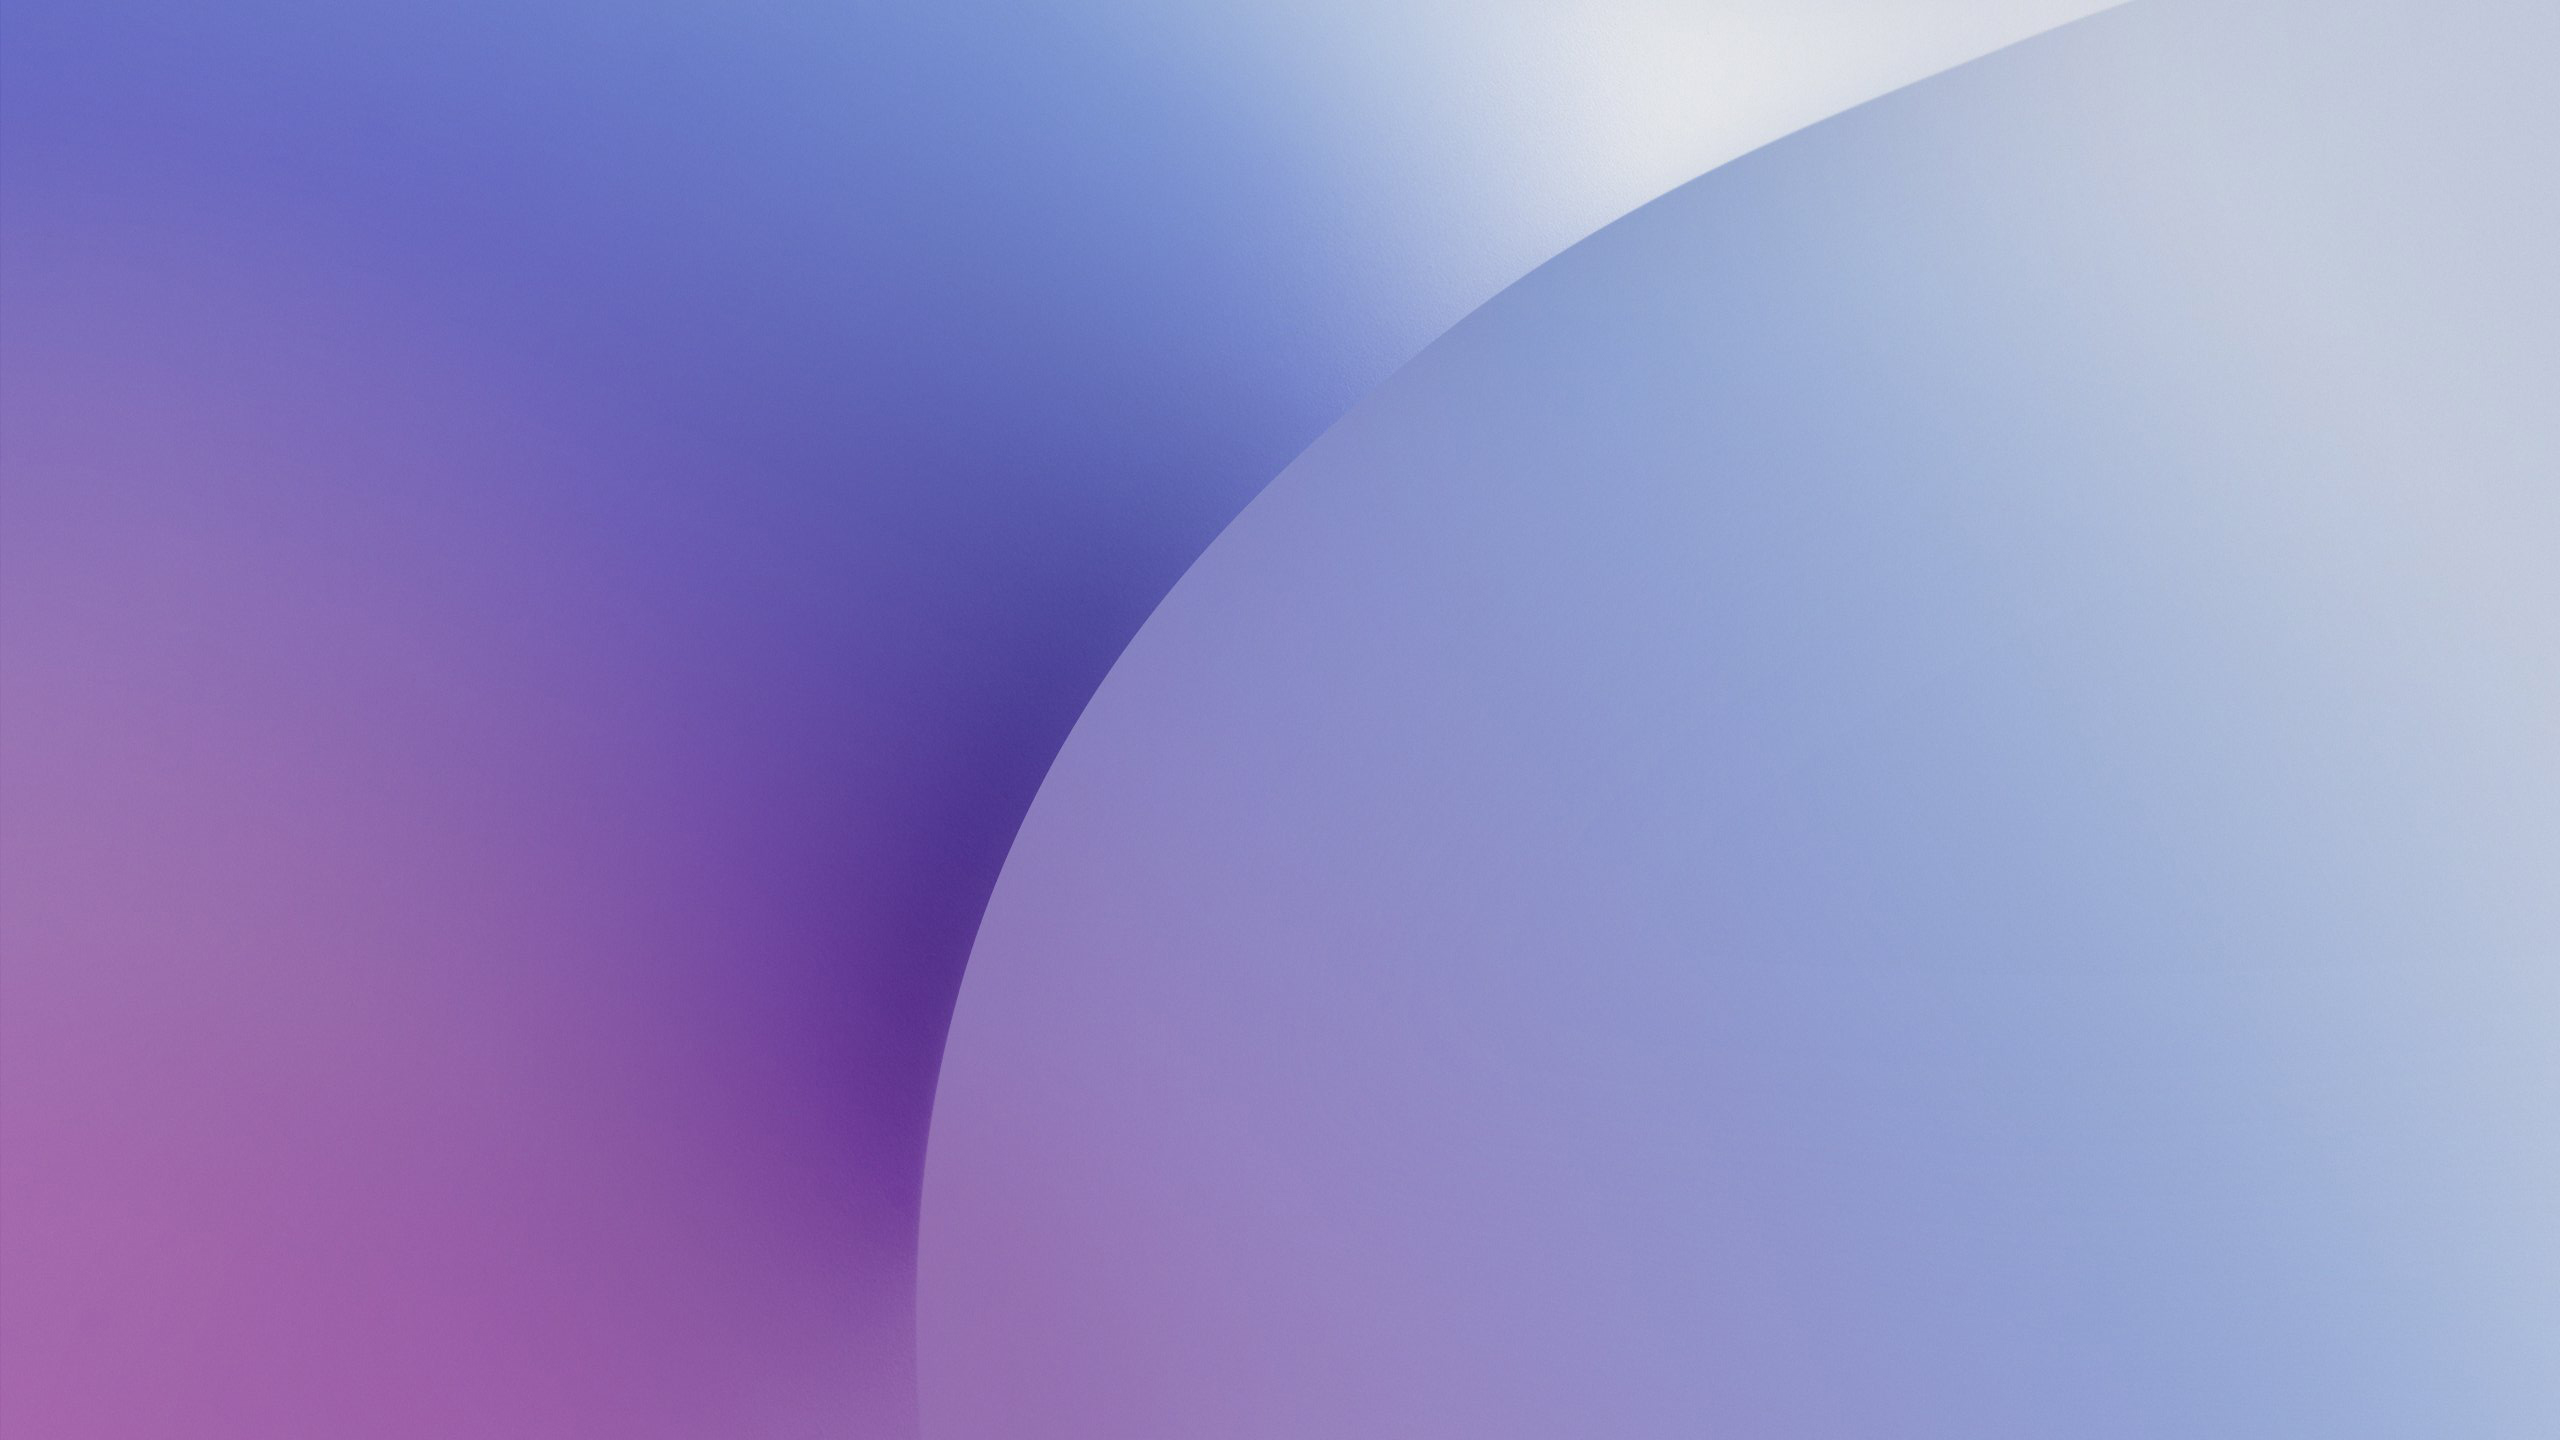 Purple Gradient LG V30 Stock